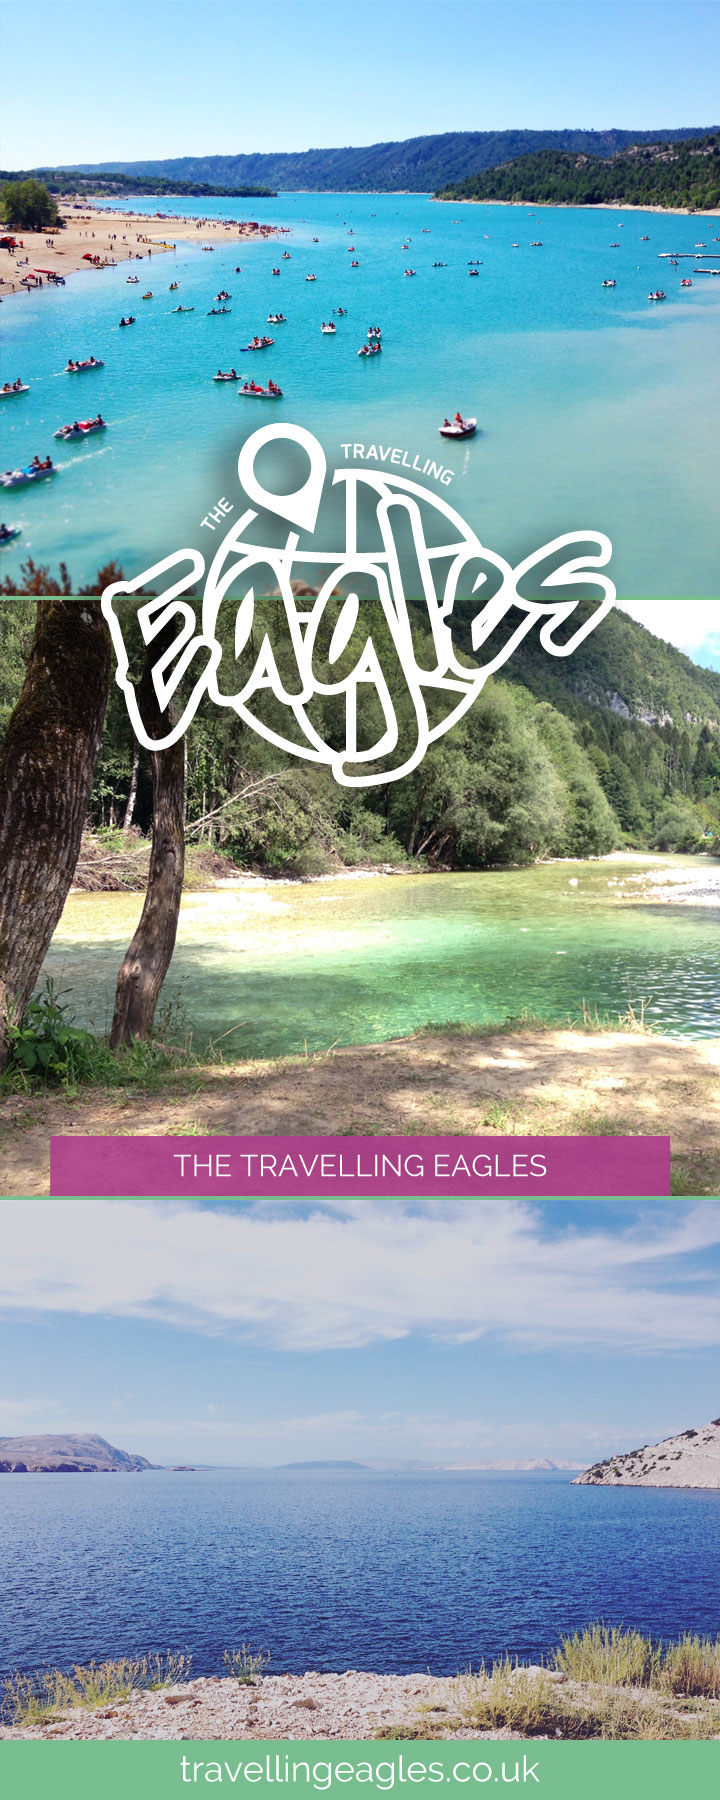 Europe - The Travelling Eagles